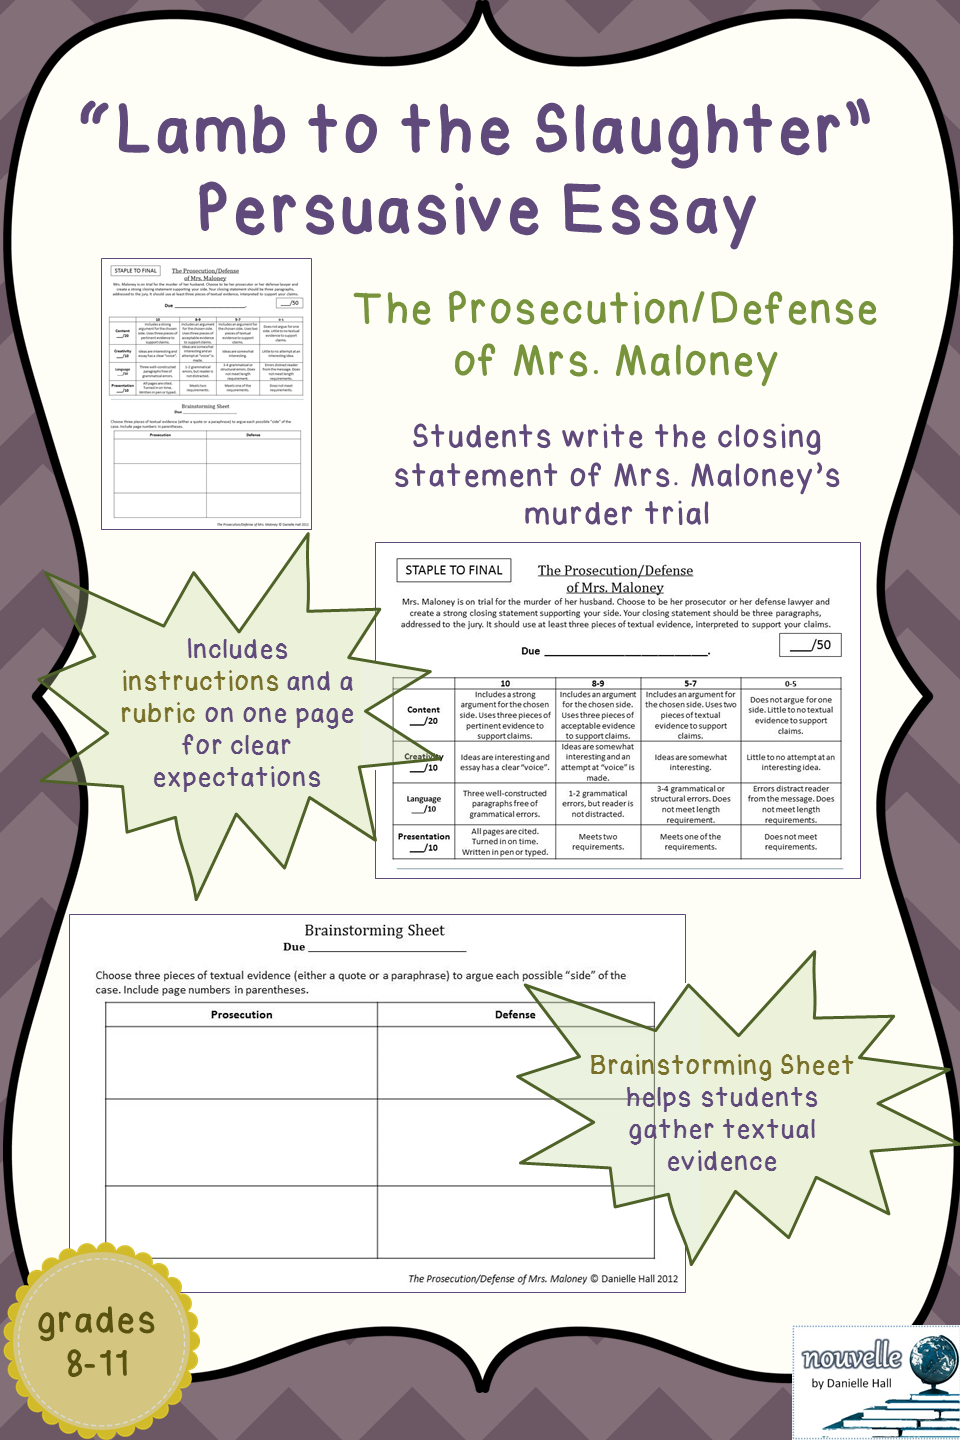 lamb to the slaughter persuasive essay the prosecution defense an argumentative persuasive essay about roald dahl s story lamb to the slaughter